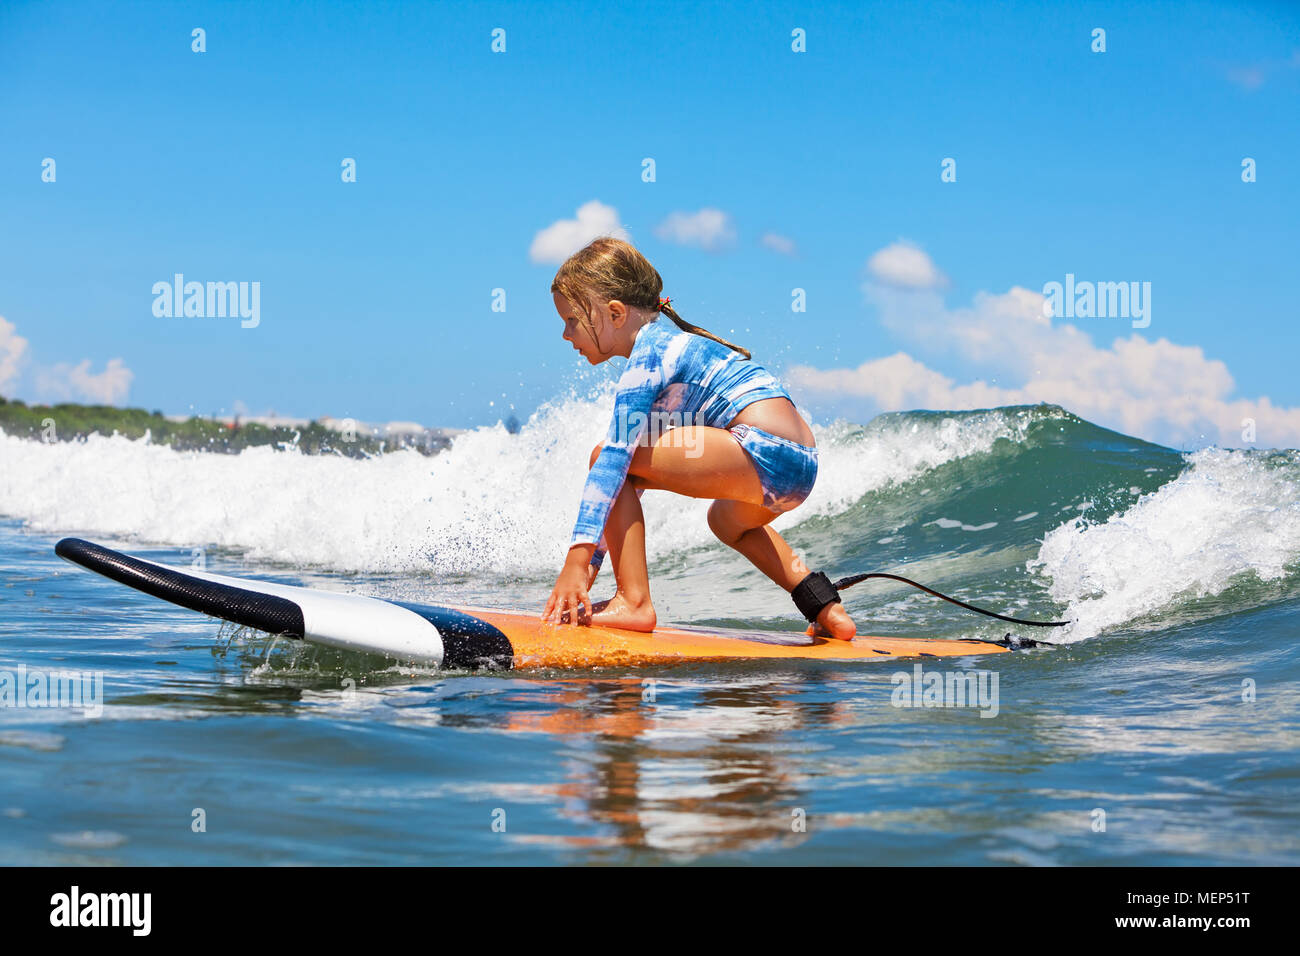 Happy baby girl. young surfer ride on surfboard with fun on sea waves. Active family lifestyle, kids outdoor water sport lessons and swimming activity - Stock Image